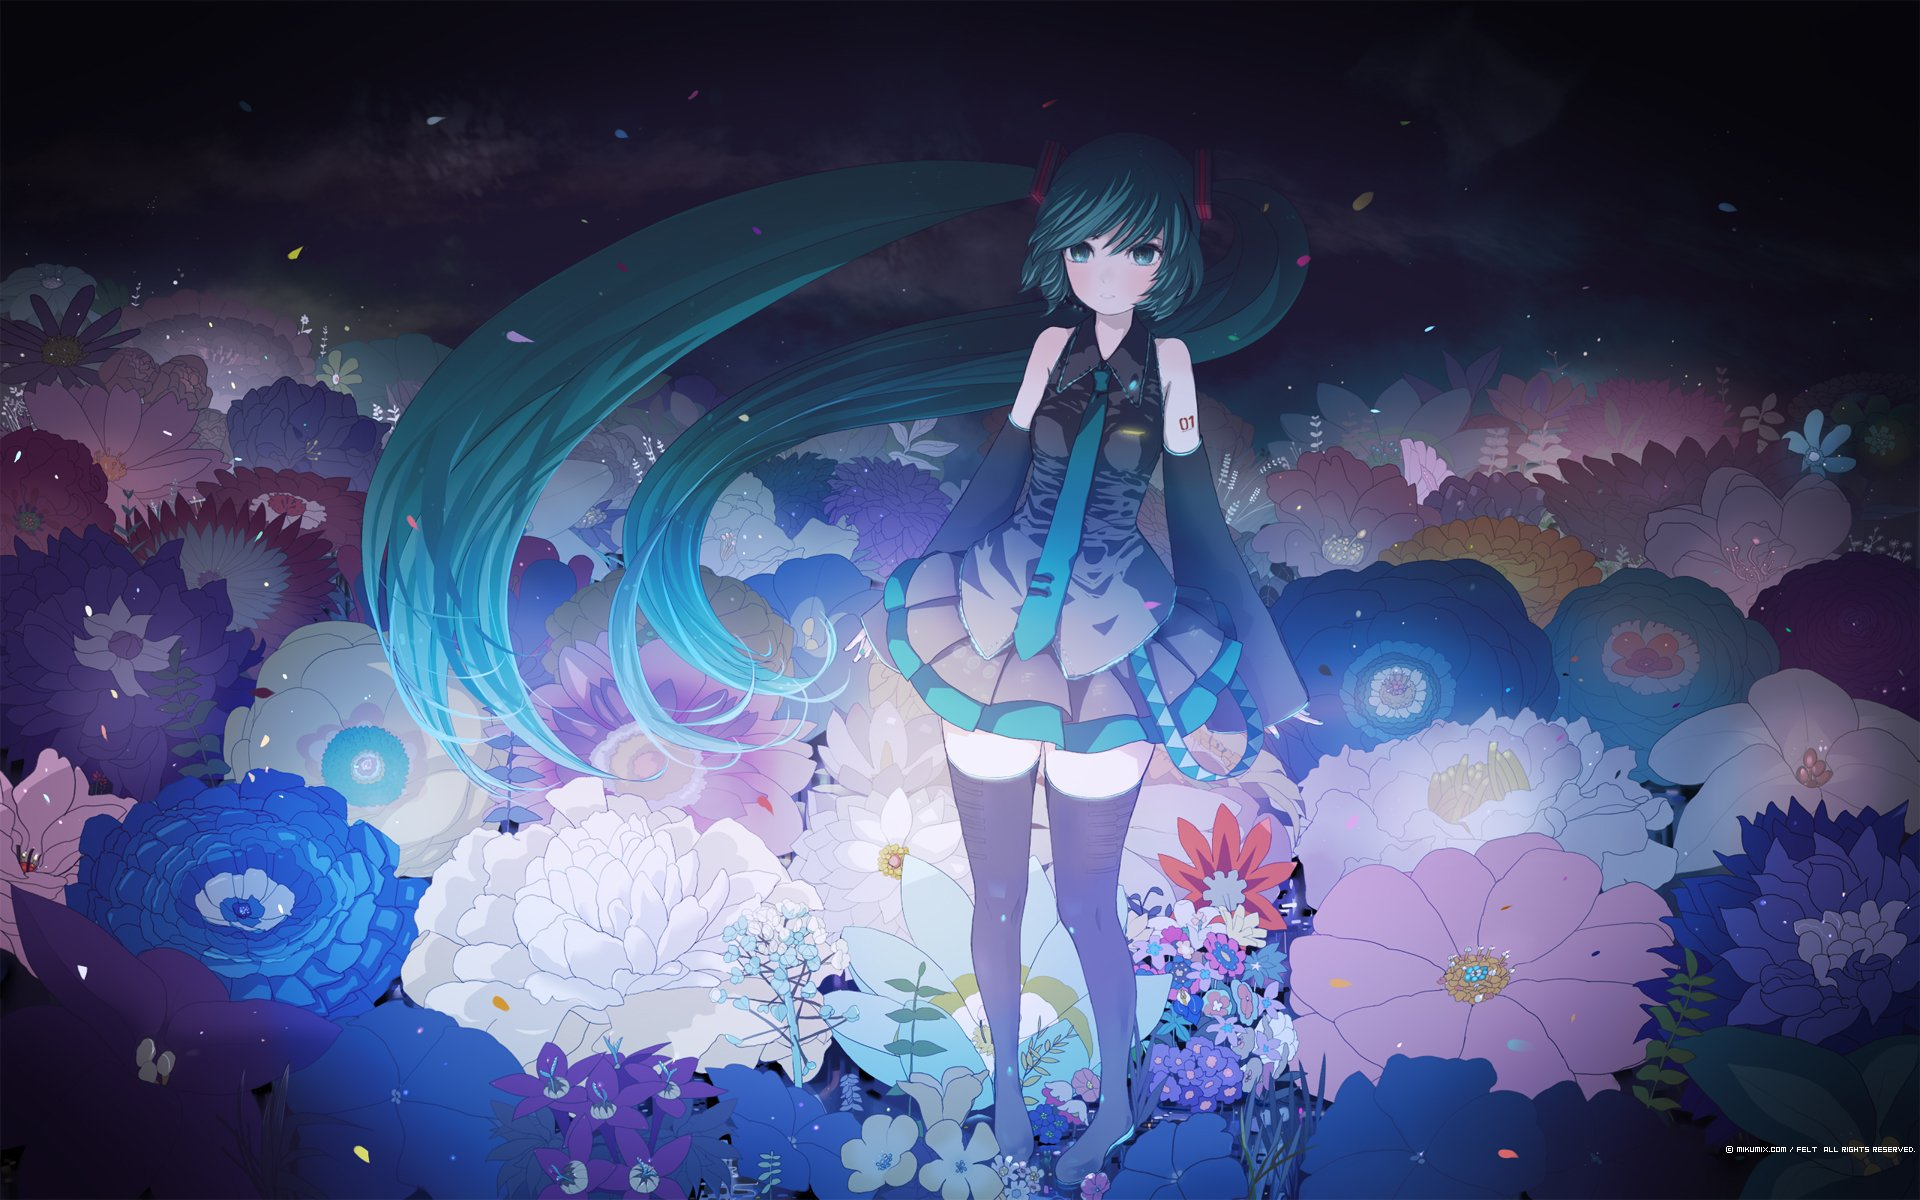 Anime - Vocaloid  Hatsune Miku Wallpaper